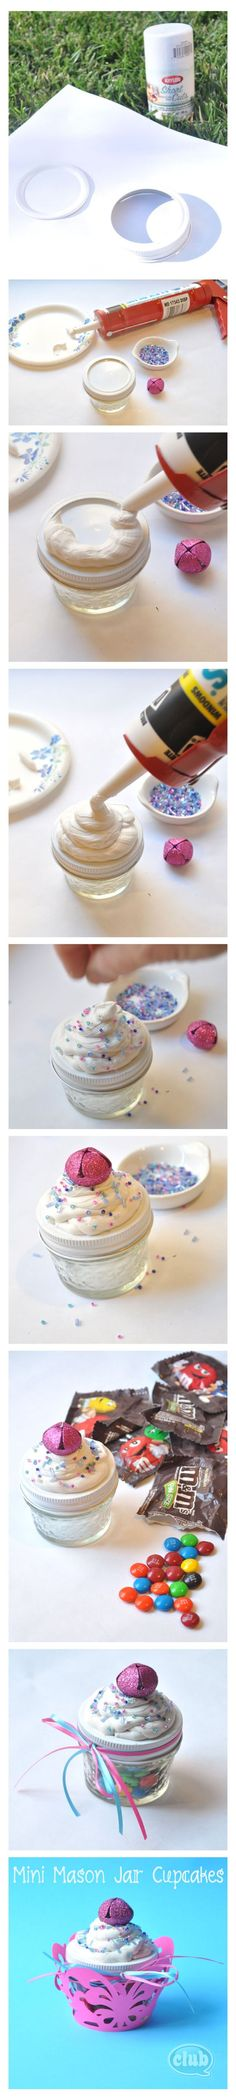 mini jar cupcakes, creative way to give a gift or party favours.